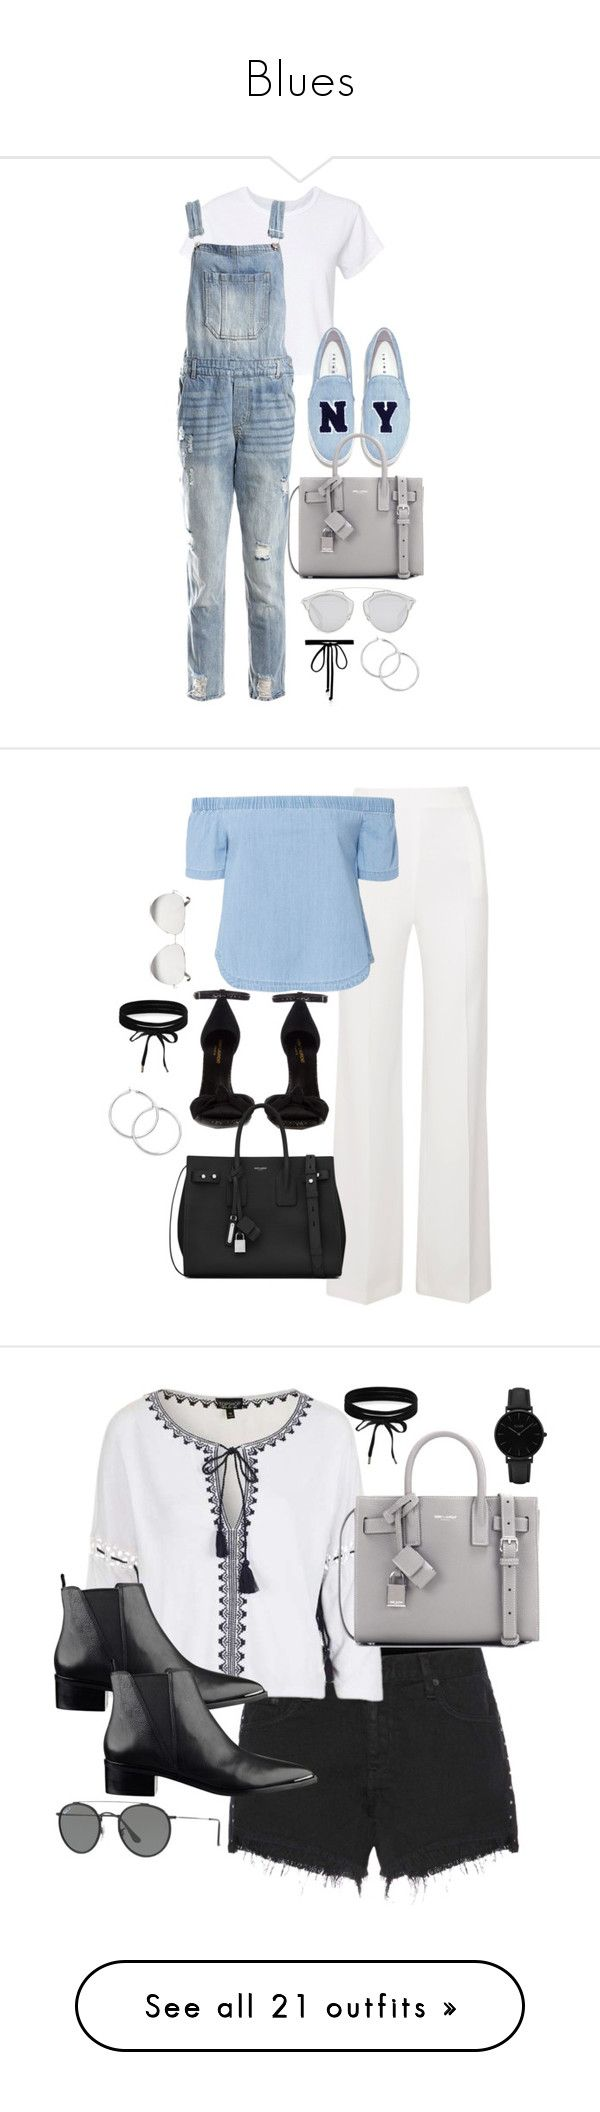 """""""Blues"""" by theaverageauburn ❤ liked on Polyvore featuring RE/DONE, Sans Souci, Joshua's, Yves Saint Laurent, Christian Dior, Joomi Lim, Roland Mouret, 3x1, Victoria Beckham and Boohoo"""